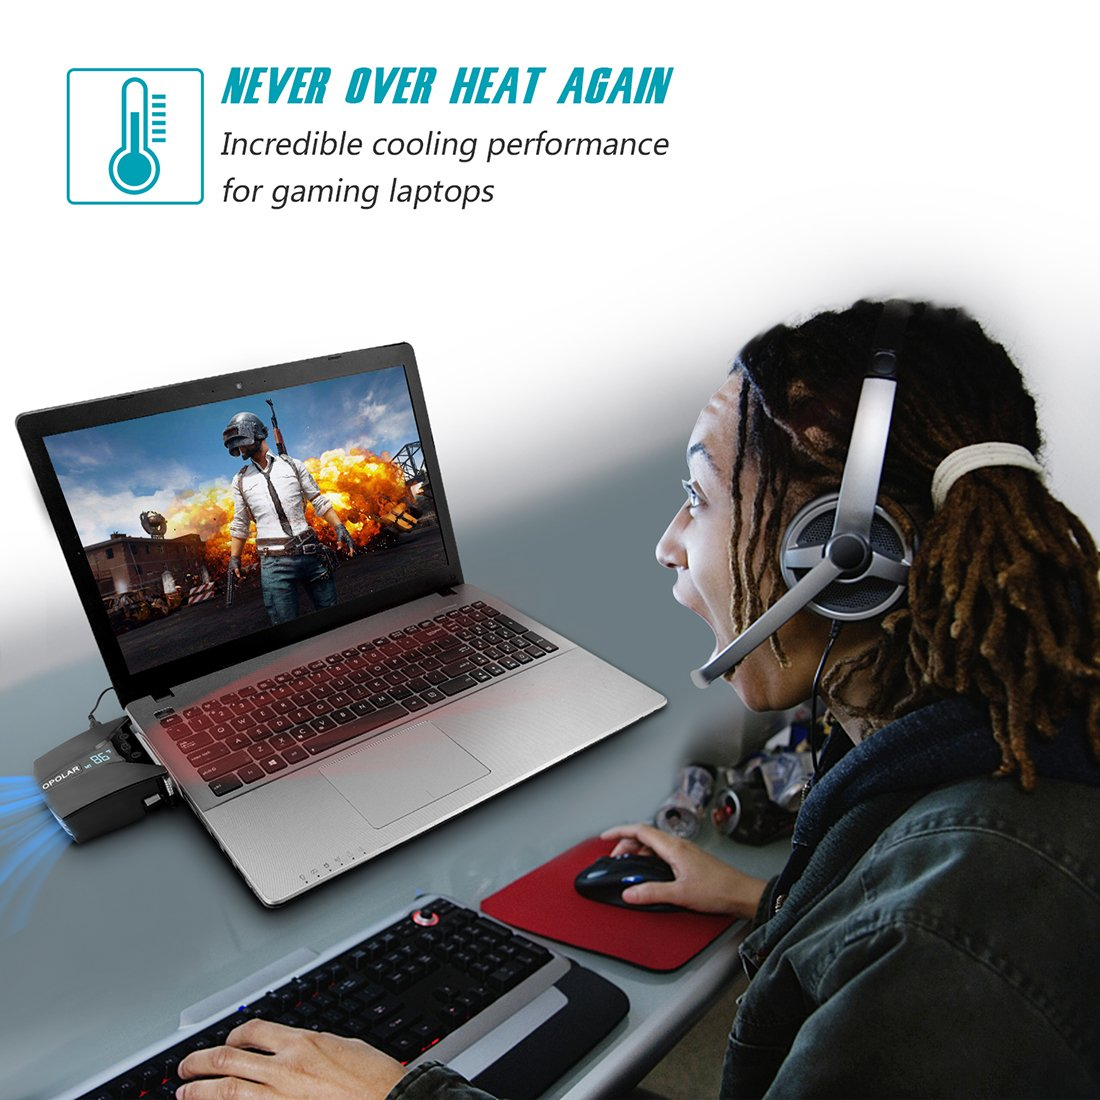 OPOLAR Laptop Fan Cooler with Temperature Display, Rapid Cooling, Auto-Temp Detection, 13 Wind Speed(2600-5000RPM), Perfect for Gaming Laptop, Nintendo Switch by OPOLAR (Image #5)